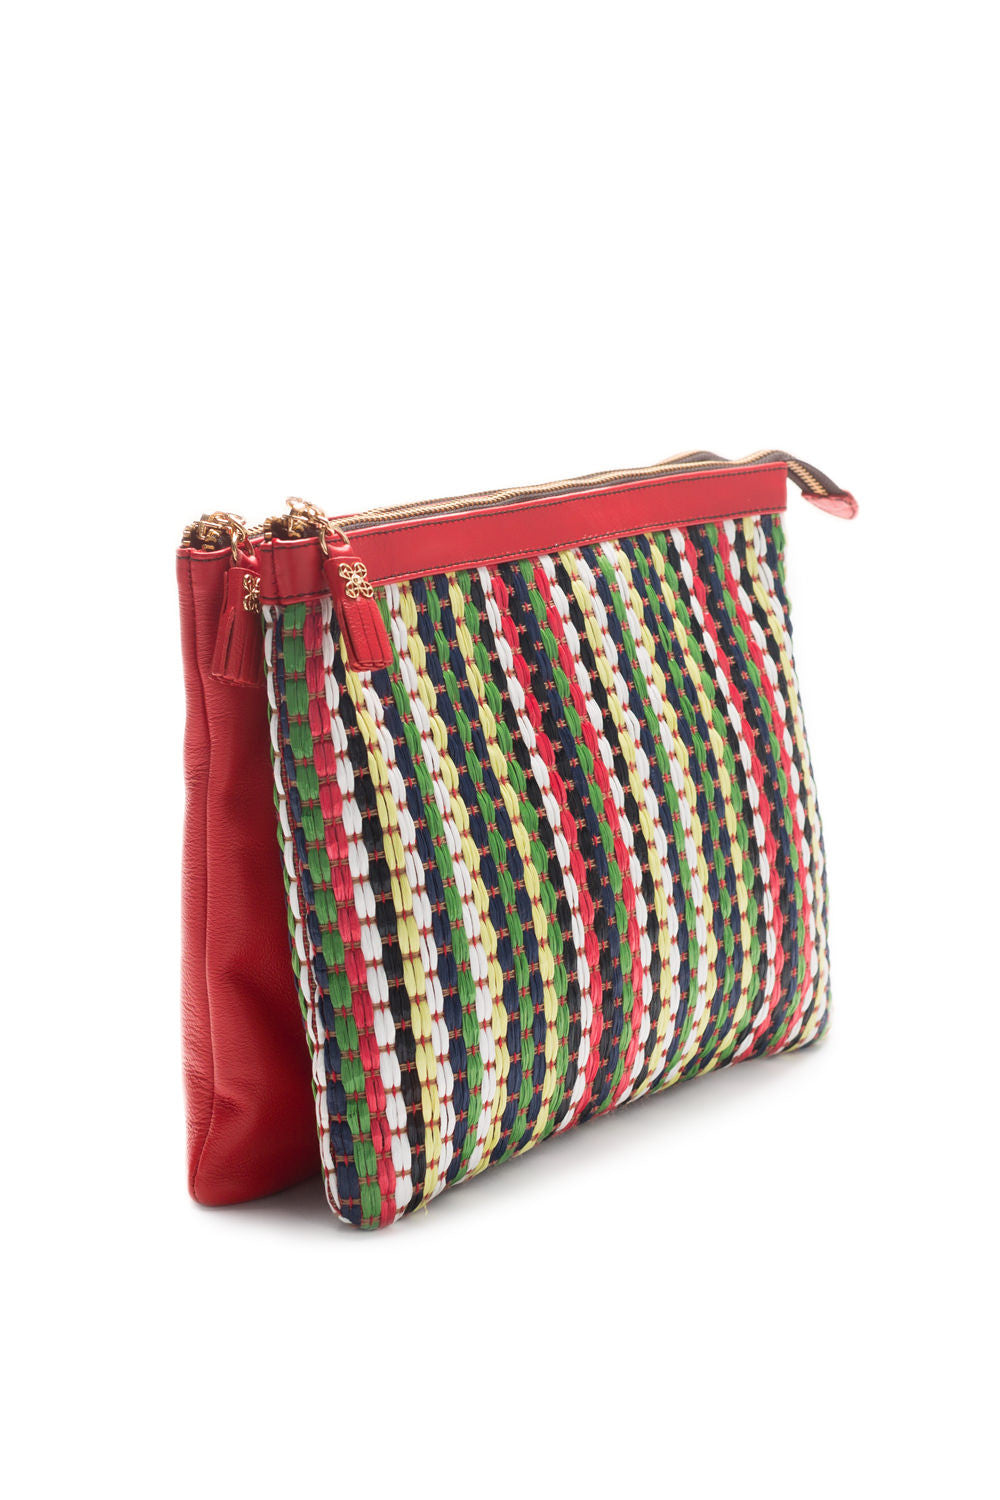 Mel Boteri | Multicolor Raffia and Red Leather 'Abbey' Clutch | Side View